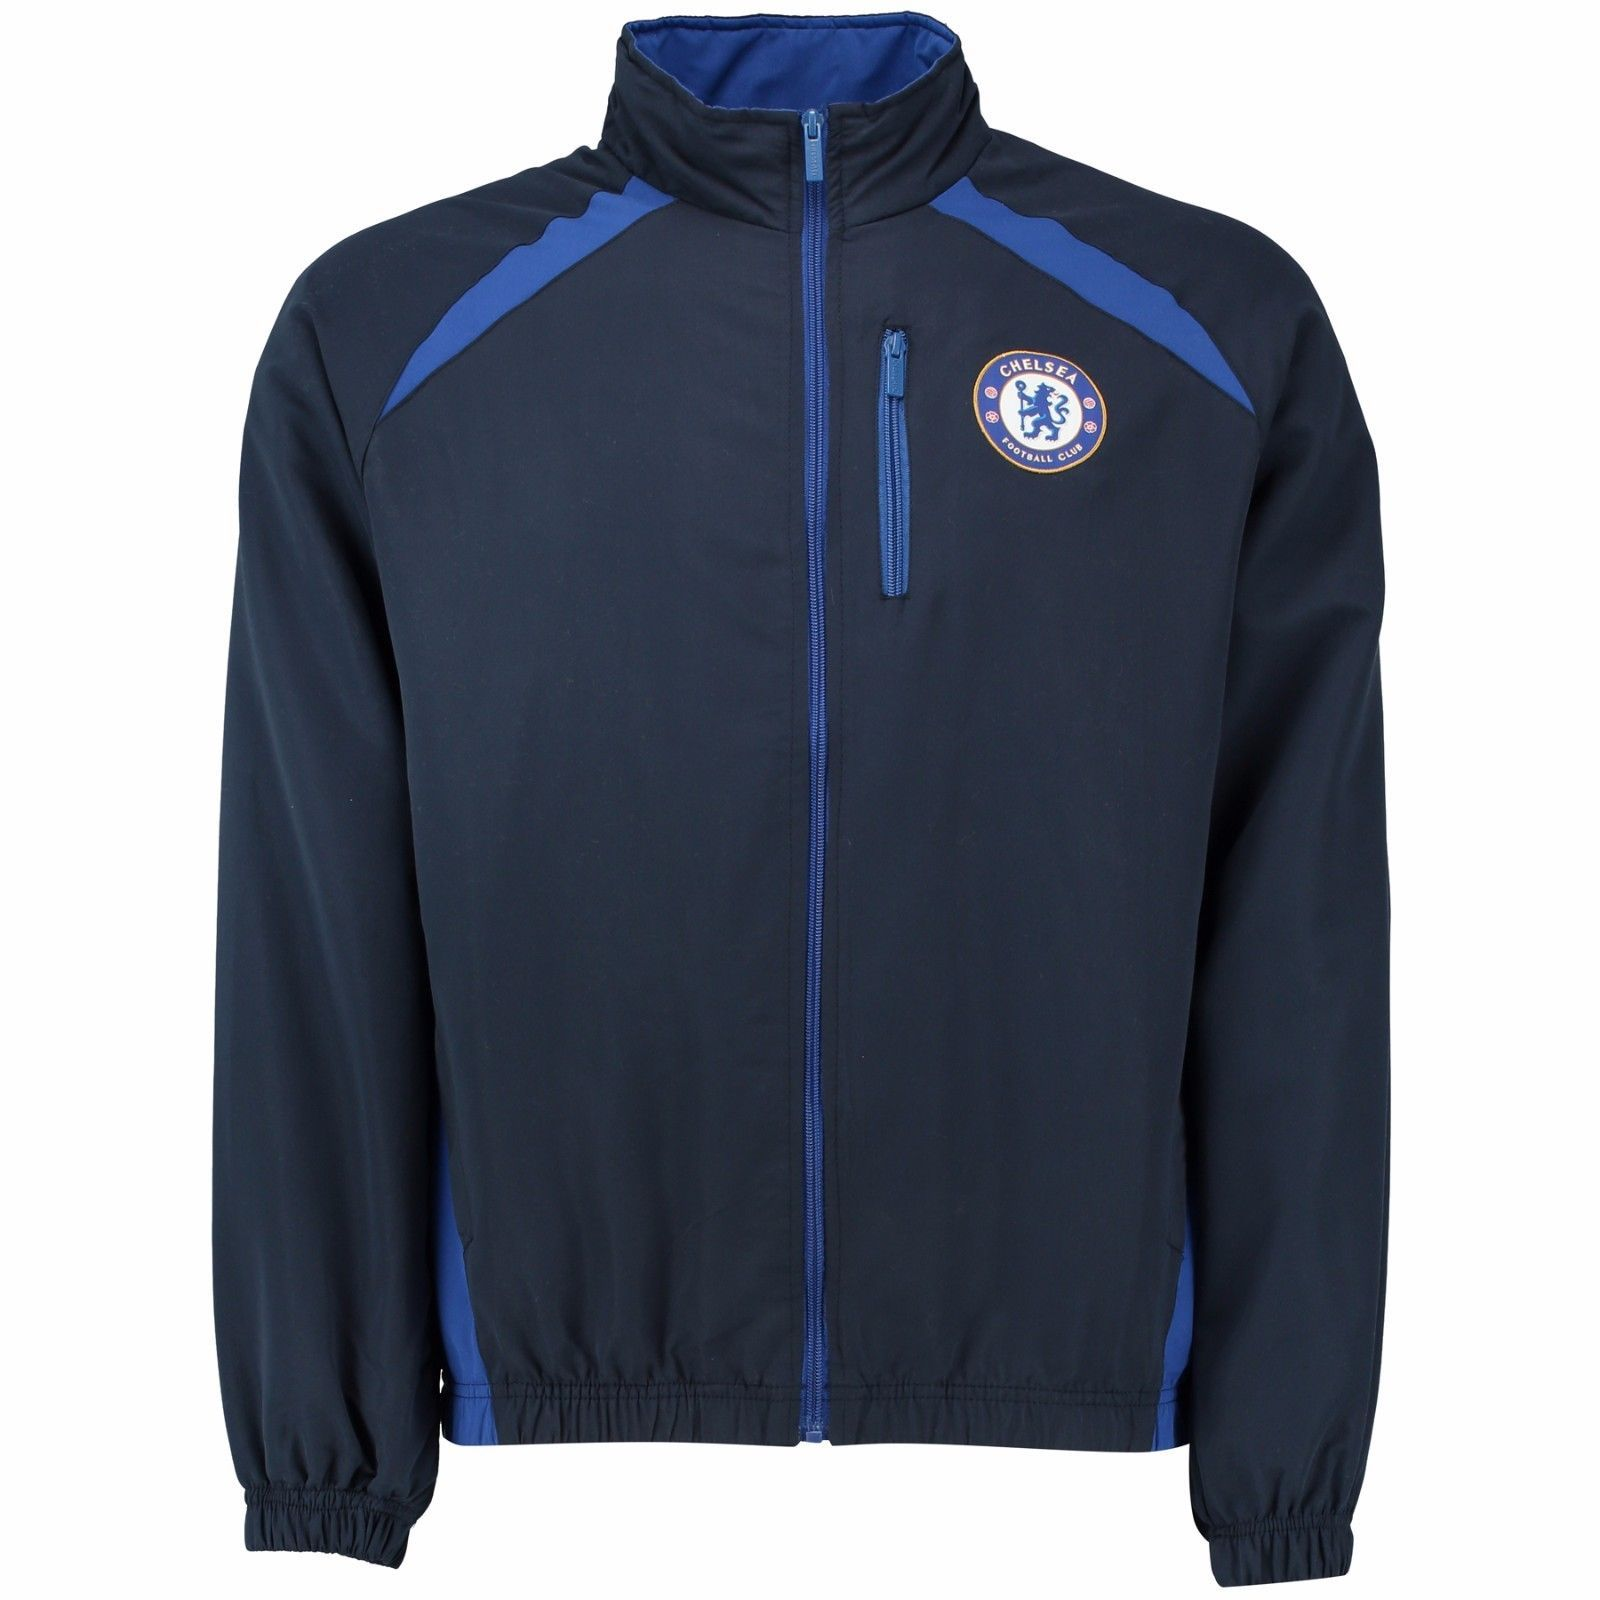 588b9c0b53 Pin by Zeppy.io on Chelsea | Tracksuit tops, Football shirts, Chelsea FC